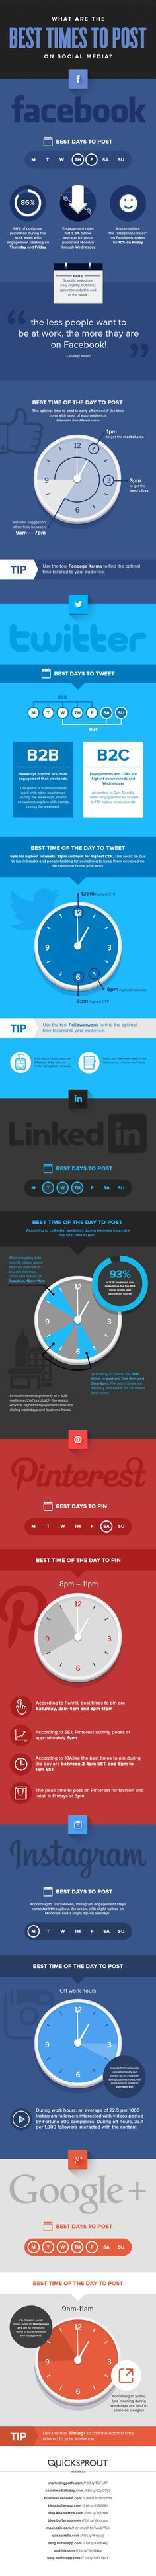 #Infographic: When to post to LinkedIn, Instagram and Pinterest